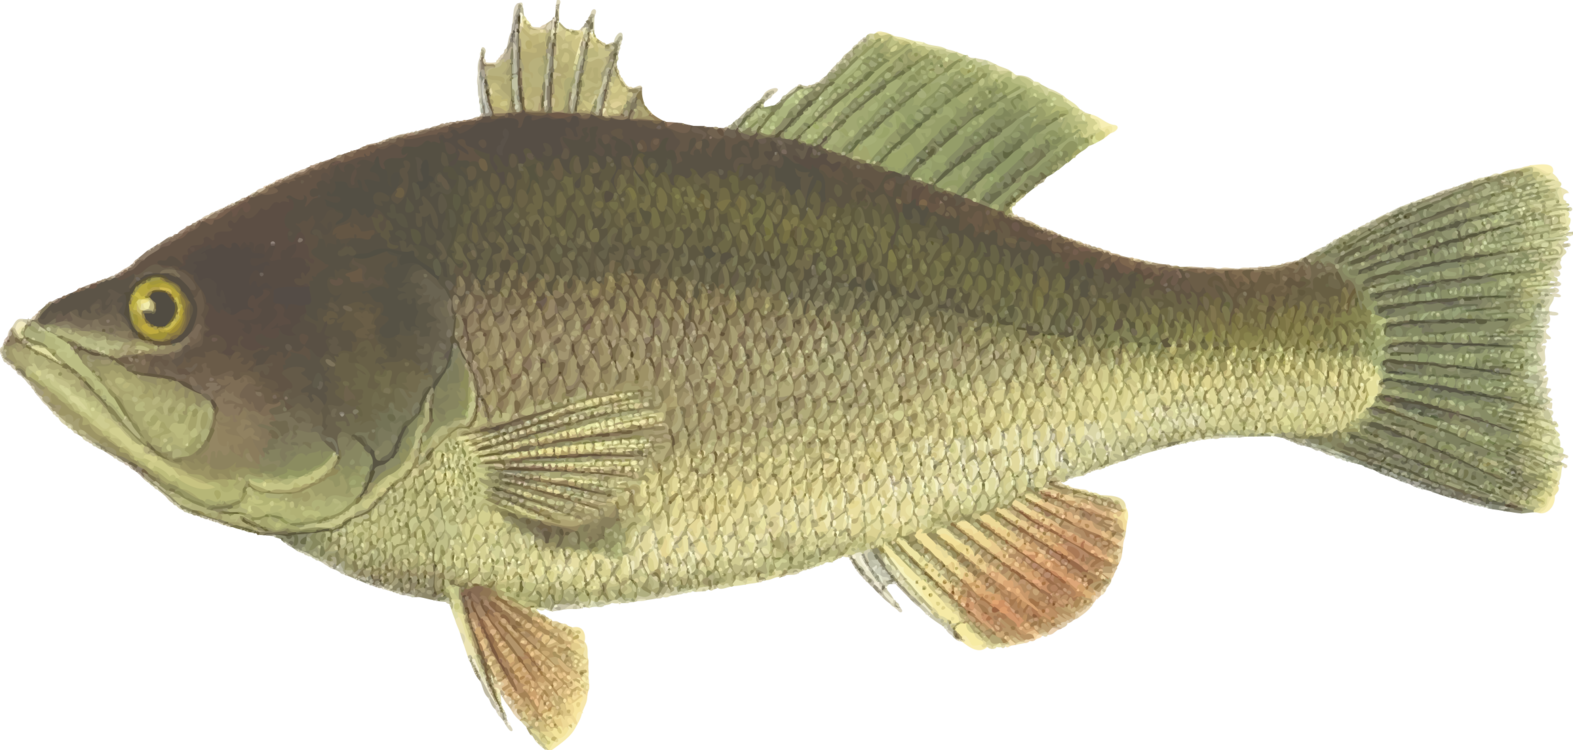 Trout clipart carp. Perch largemouth bass fish